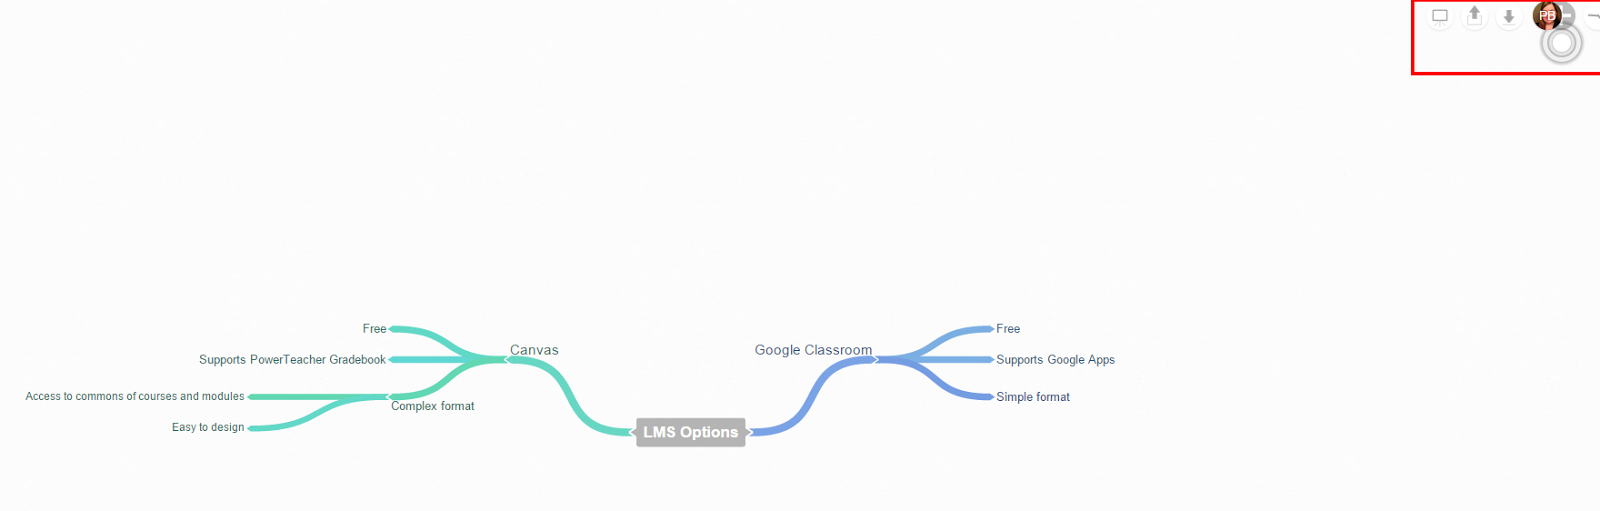 you can organize your mind maps within google drive you can also share the links in google classroom